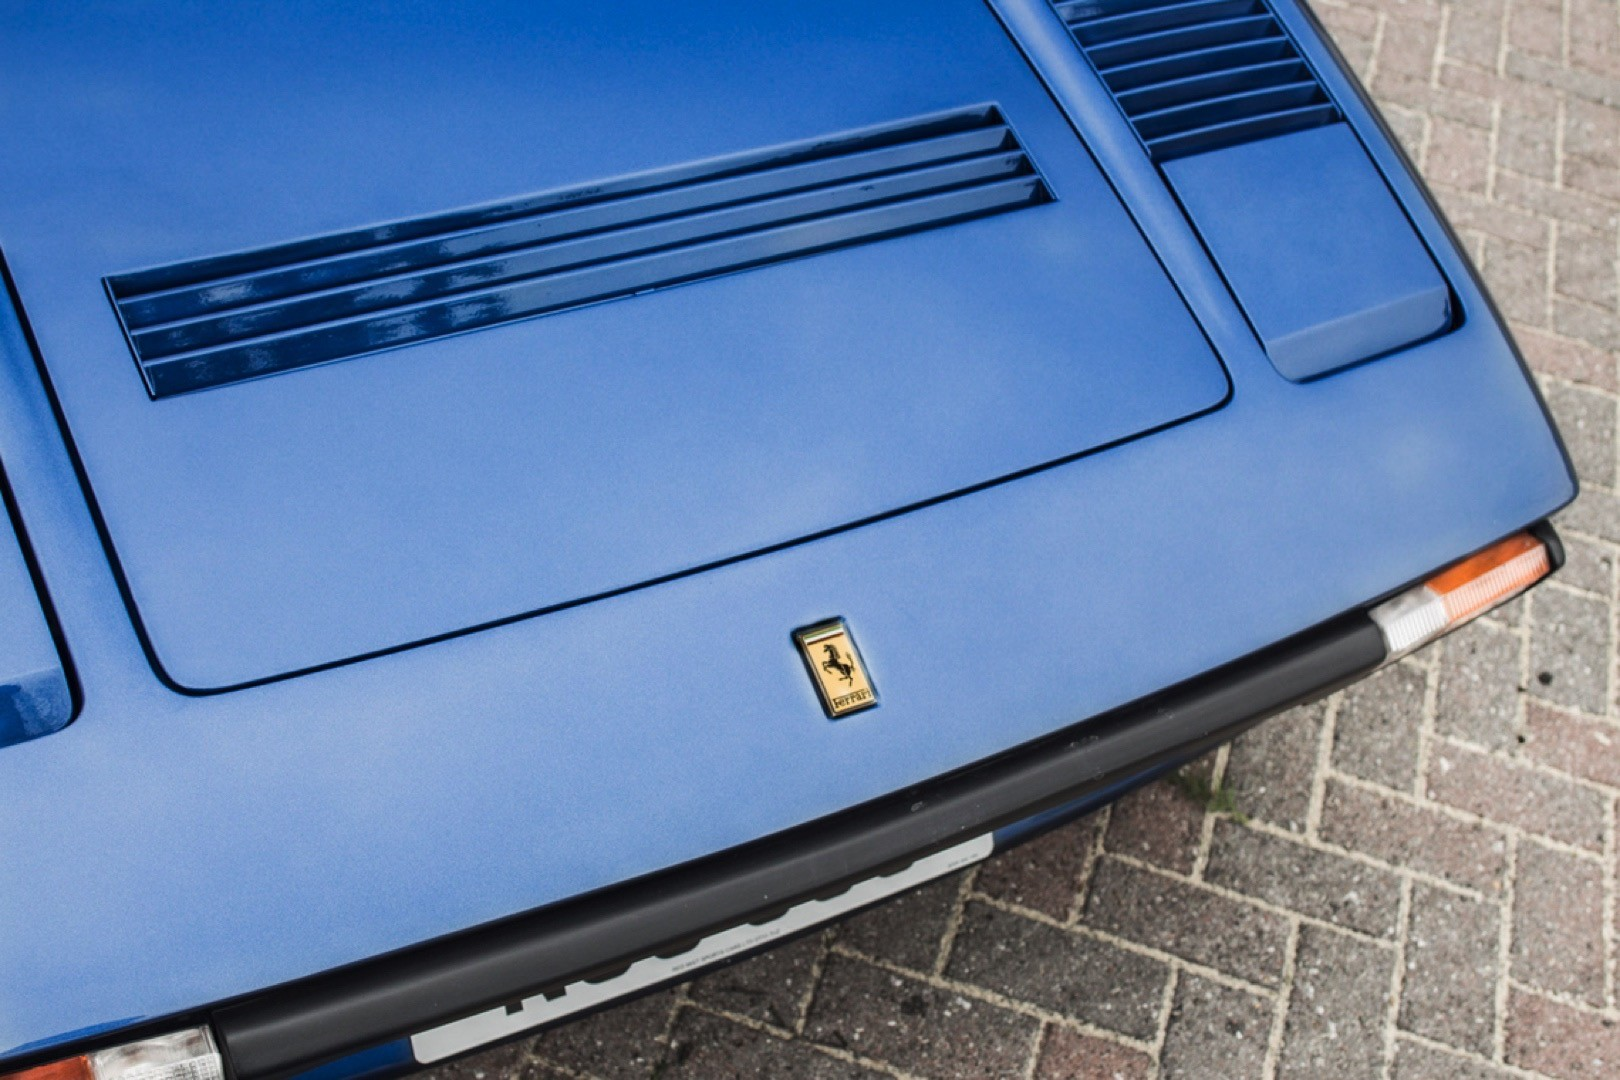 v12-engined-ferrari-308-gts 6